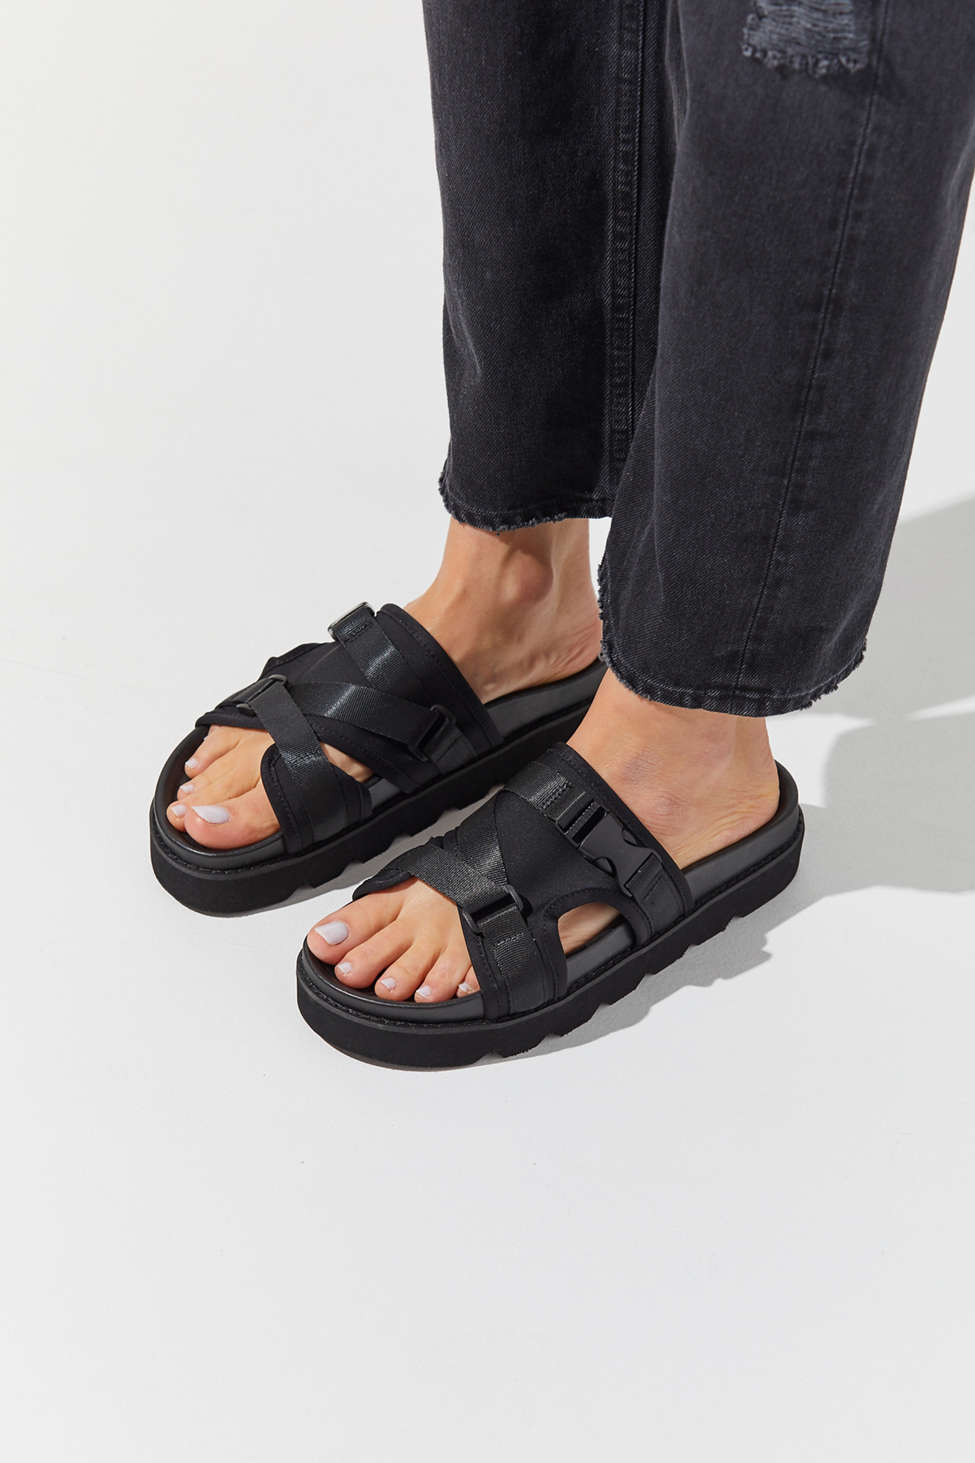 Uo Sport Slide Sandal by Urban Outfitters